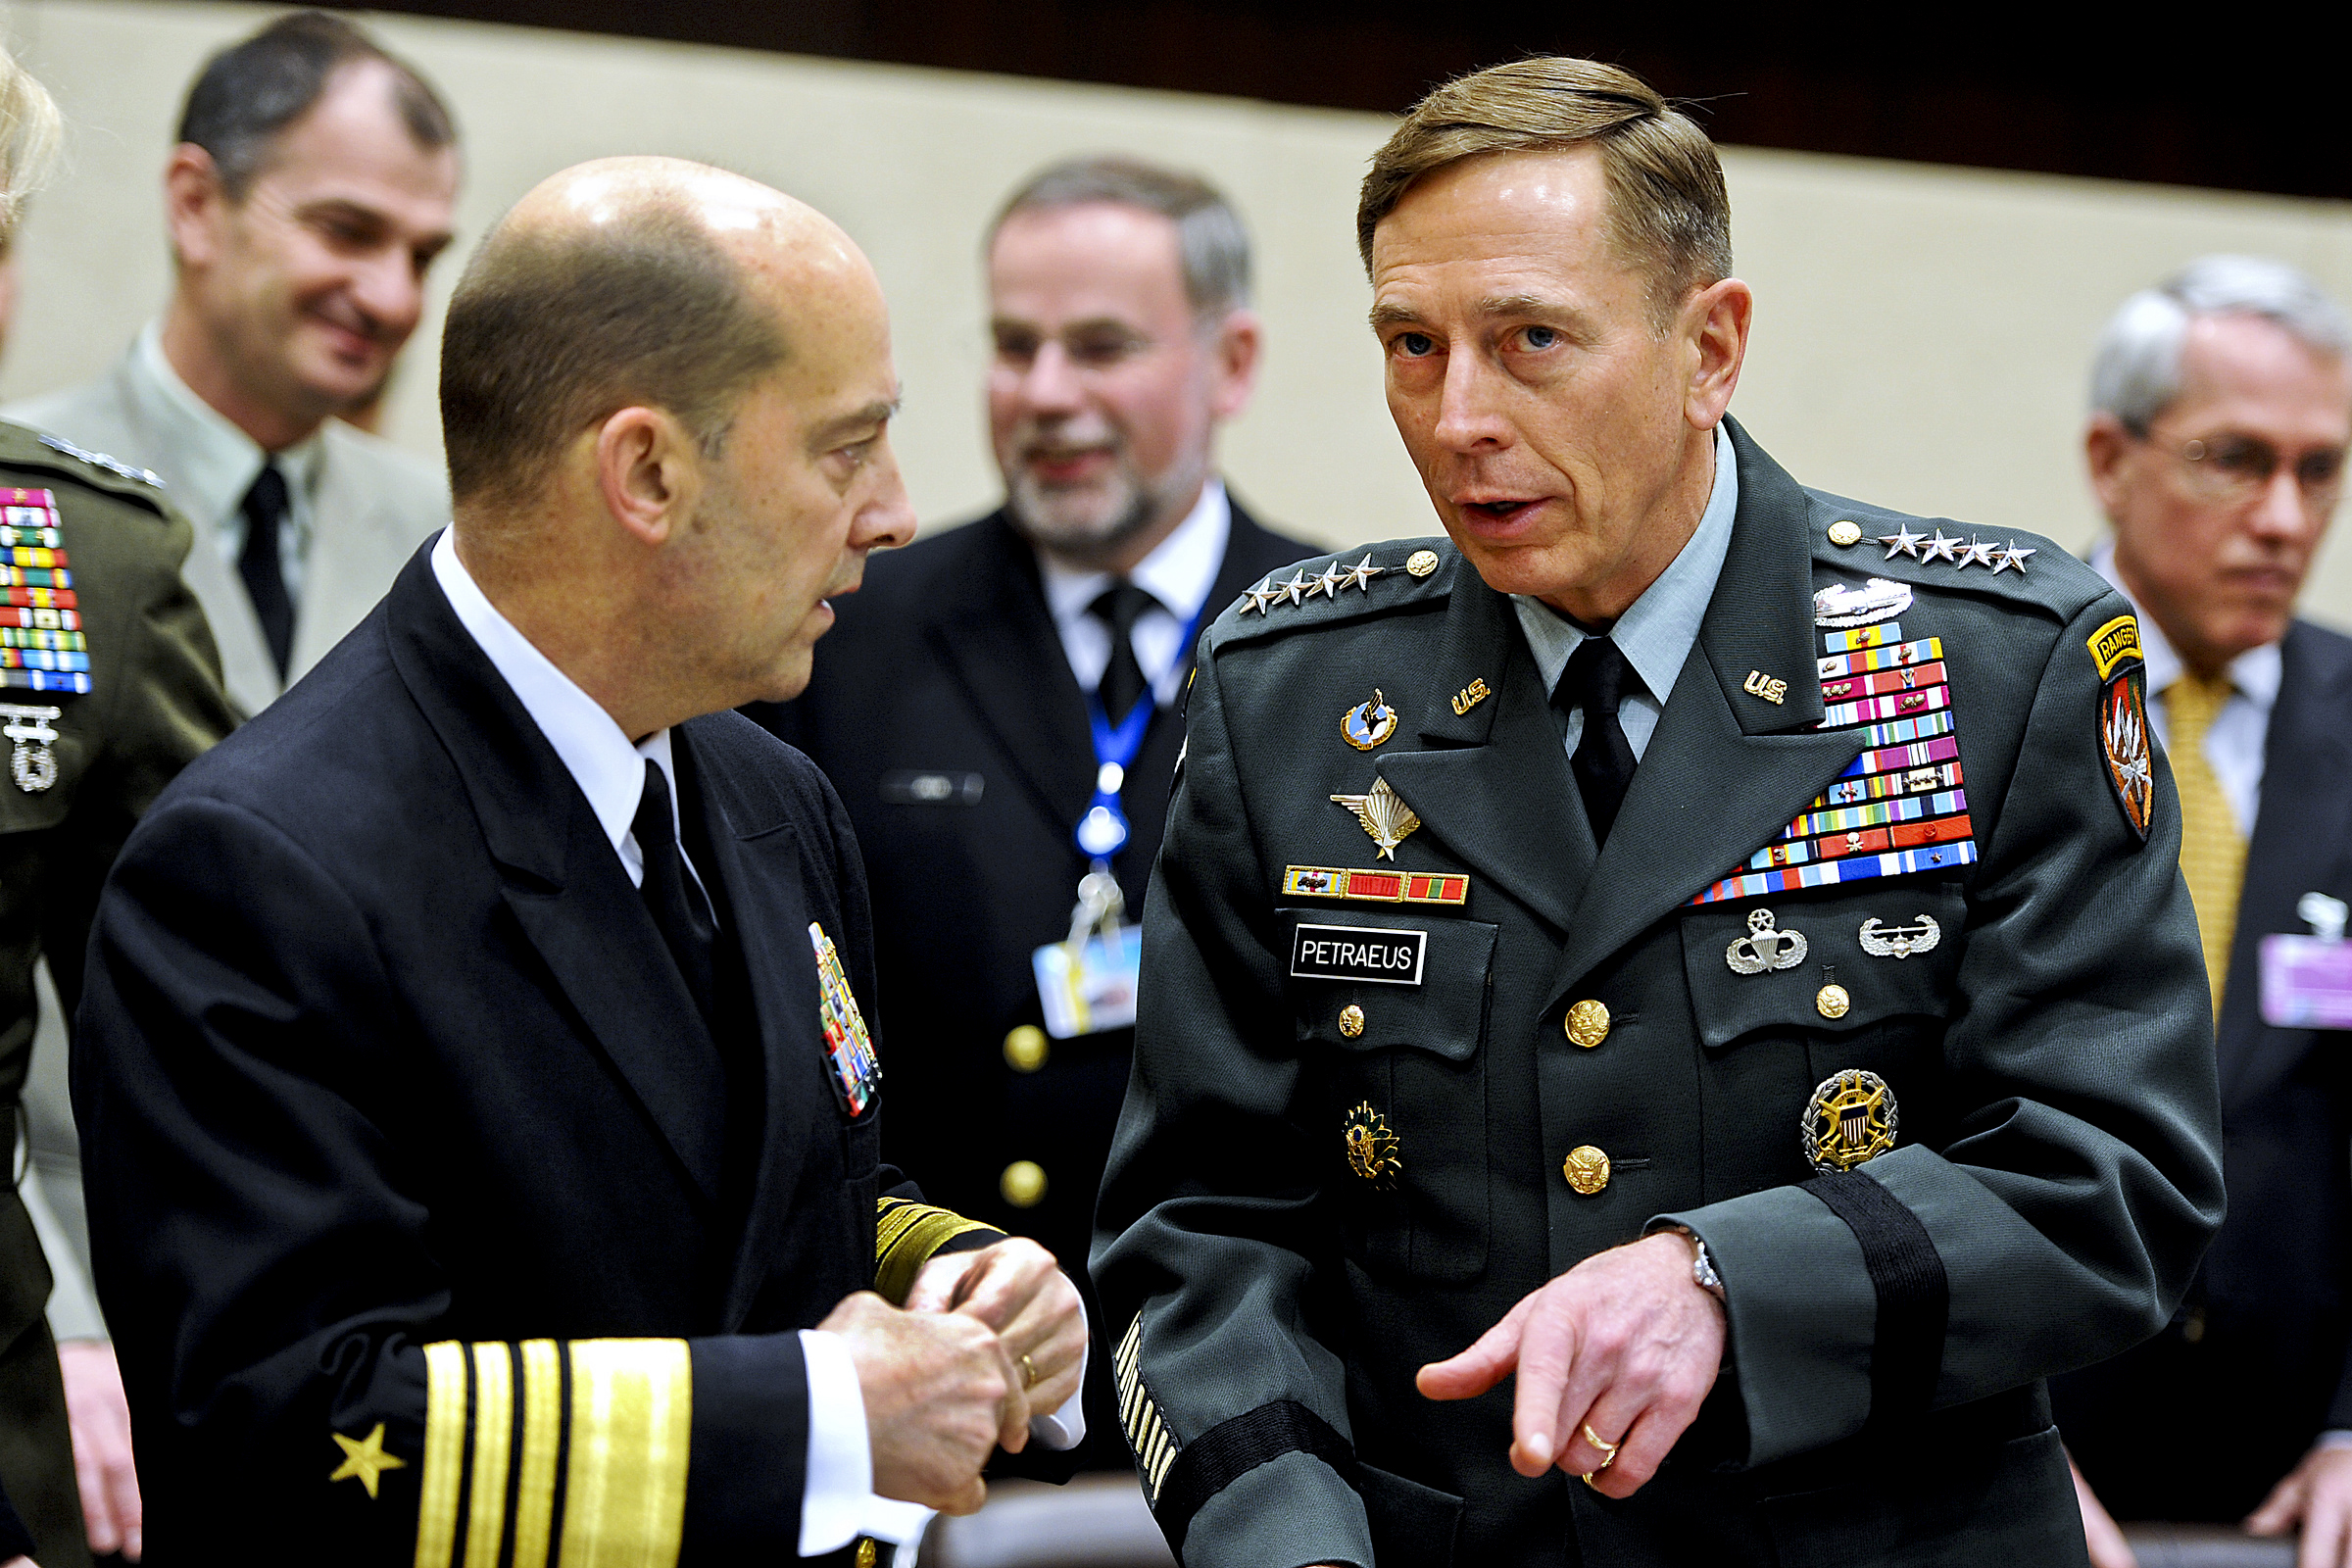 U.S. Army Gen. David H. Petraeus, right, Commander NATO International Security Assistance Force (ISAF) and U.S. Forces Afghanistan, speaks with Admiral James G. Stavridis, commander of European Command and Supreme Allied Commander, Europe, at the NATO headquarters in Brussels, Belgium March 11, 2011. Defense Department photo by Cherie Cullen (released)